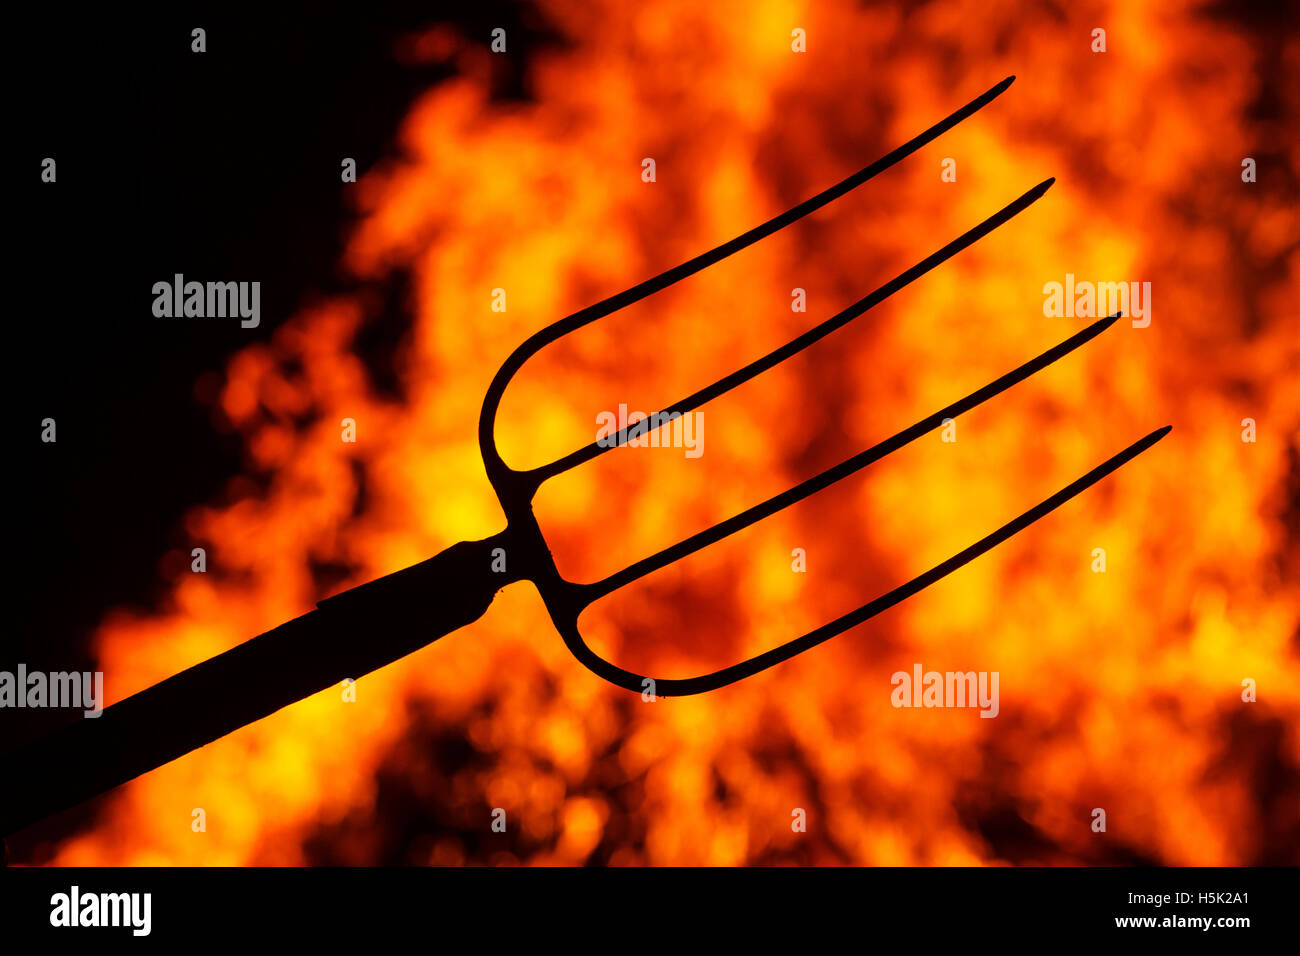 Hell fork on the background of fire stock photo royalty free hell fork on the background of fire voltagebd Choice Image